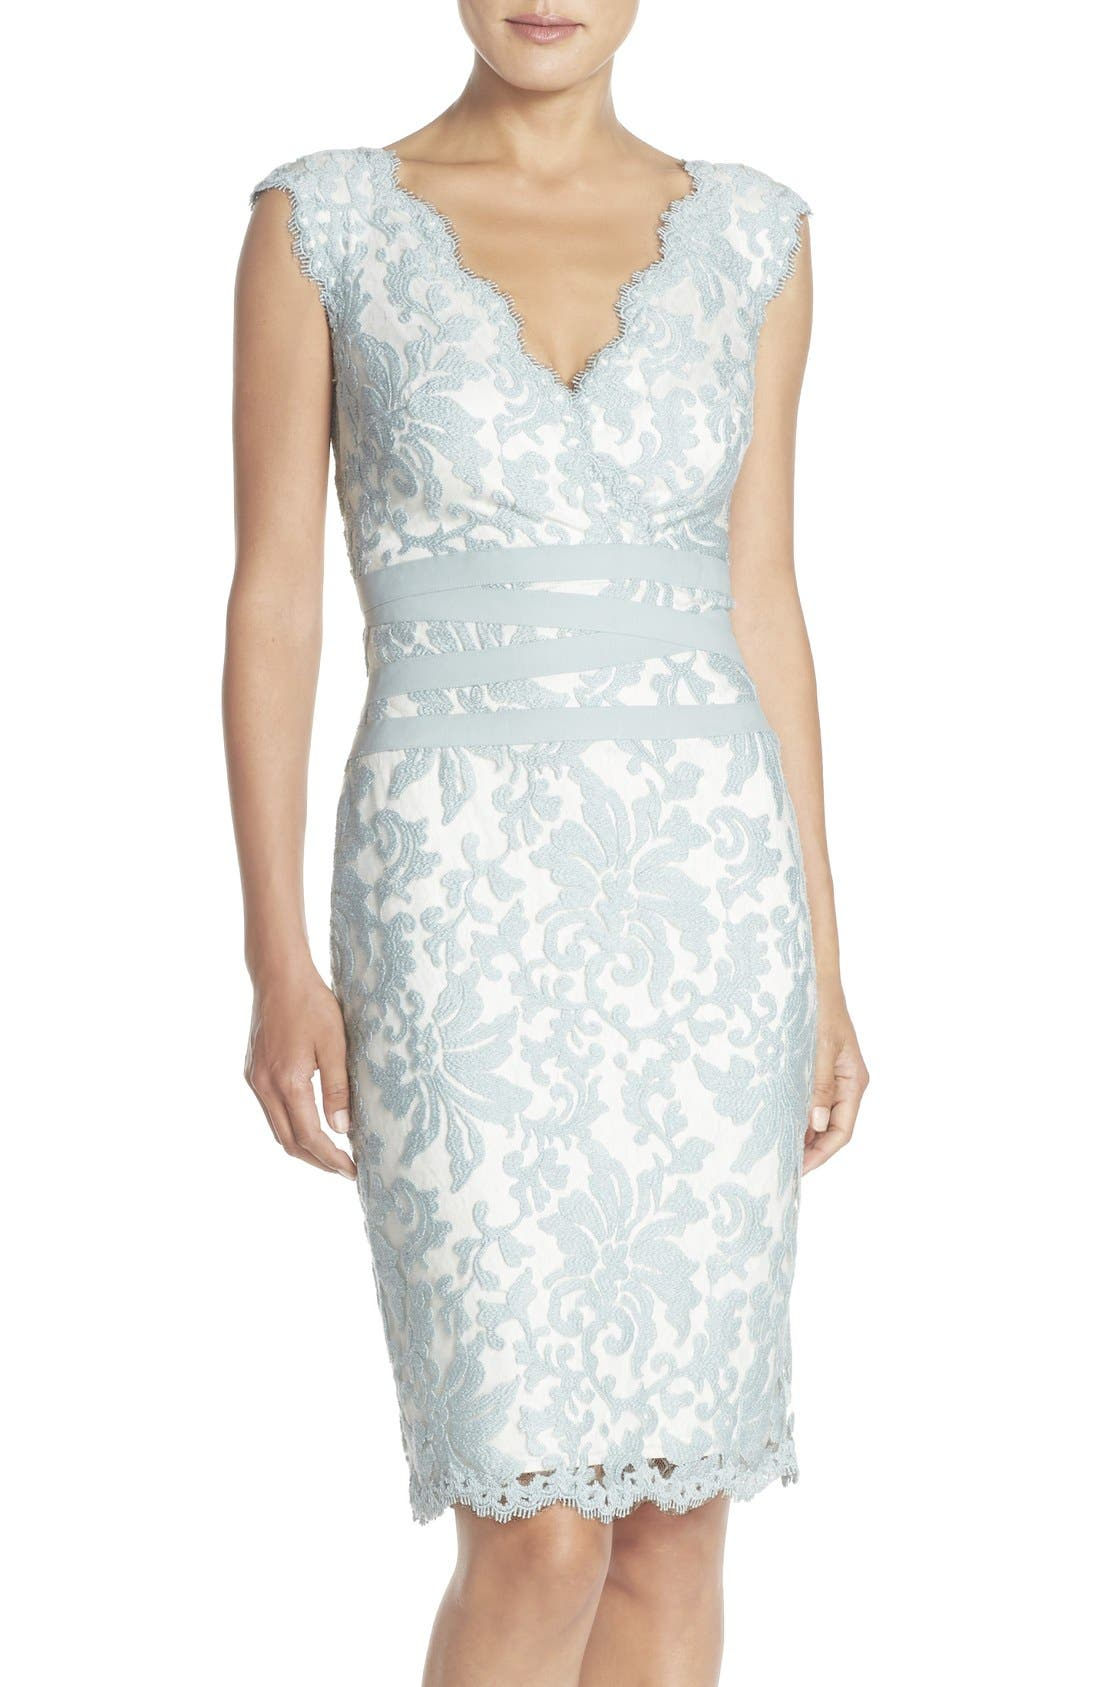 Alternate Image 1 Selected - Tadashi Shoji Embroidered Lace Sheath Dress (Regular & Petite)